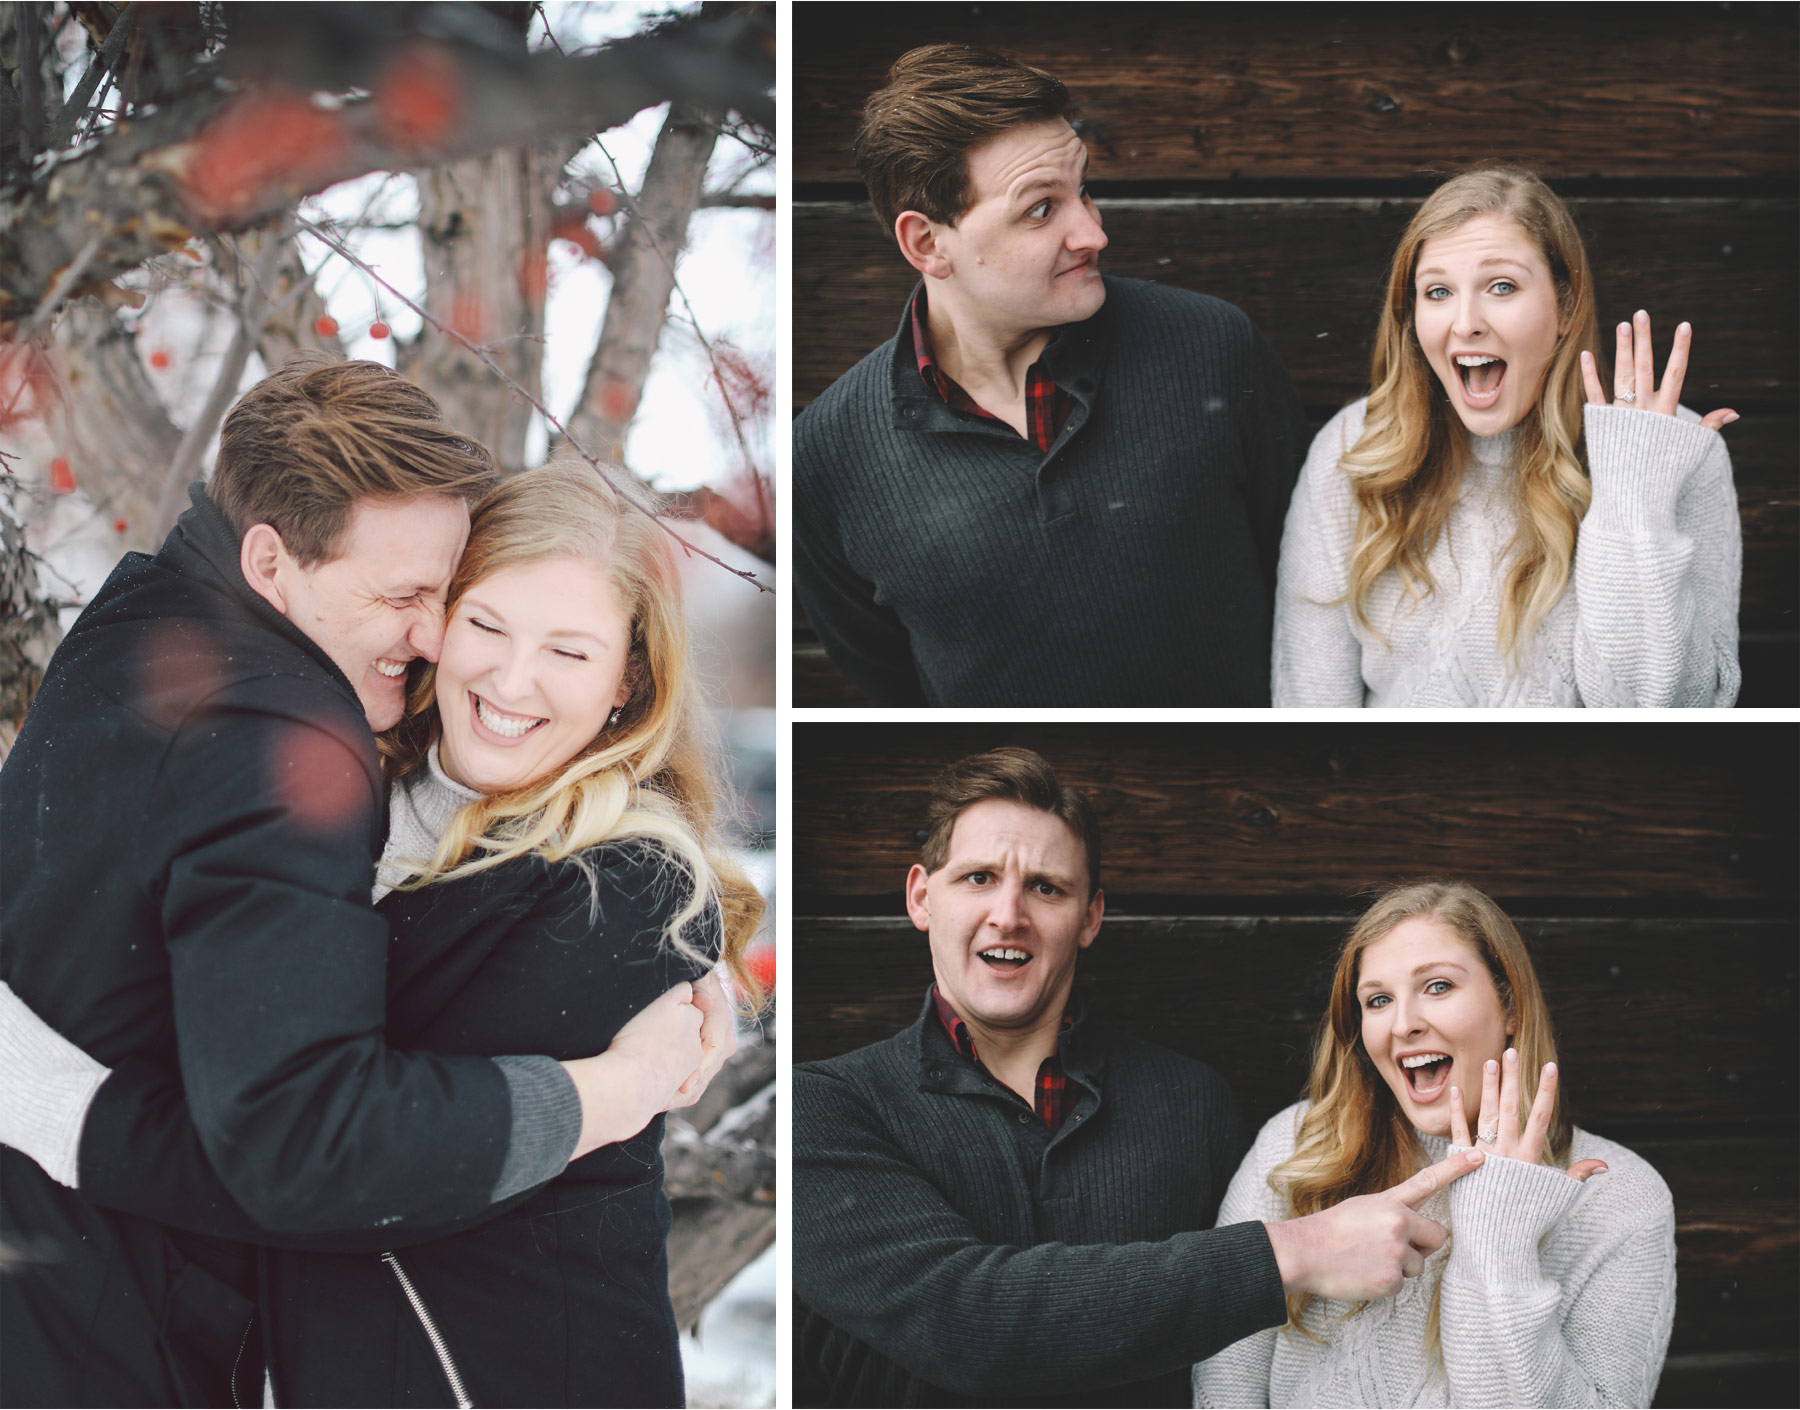 03-Vick-Photography-Engagement-Session-Winter-Outdoor-Couple-Veronica-and-Tyler.jpg